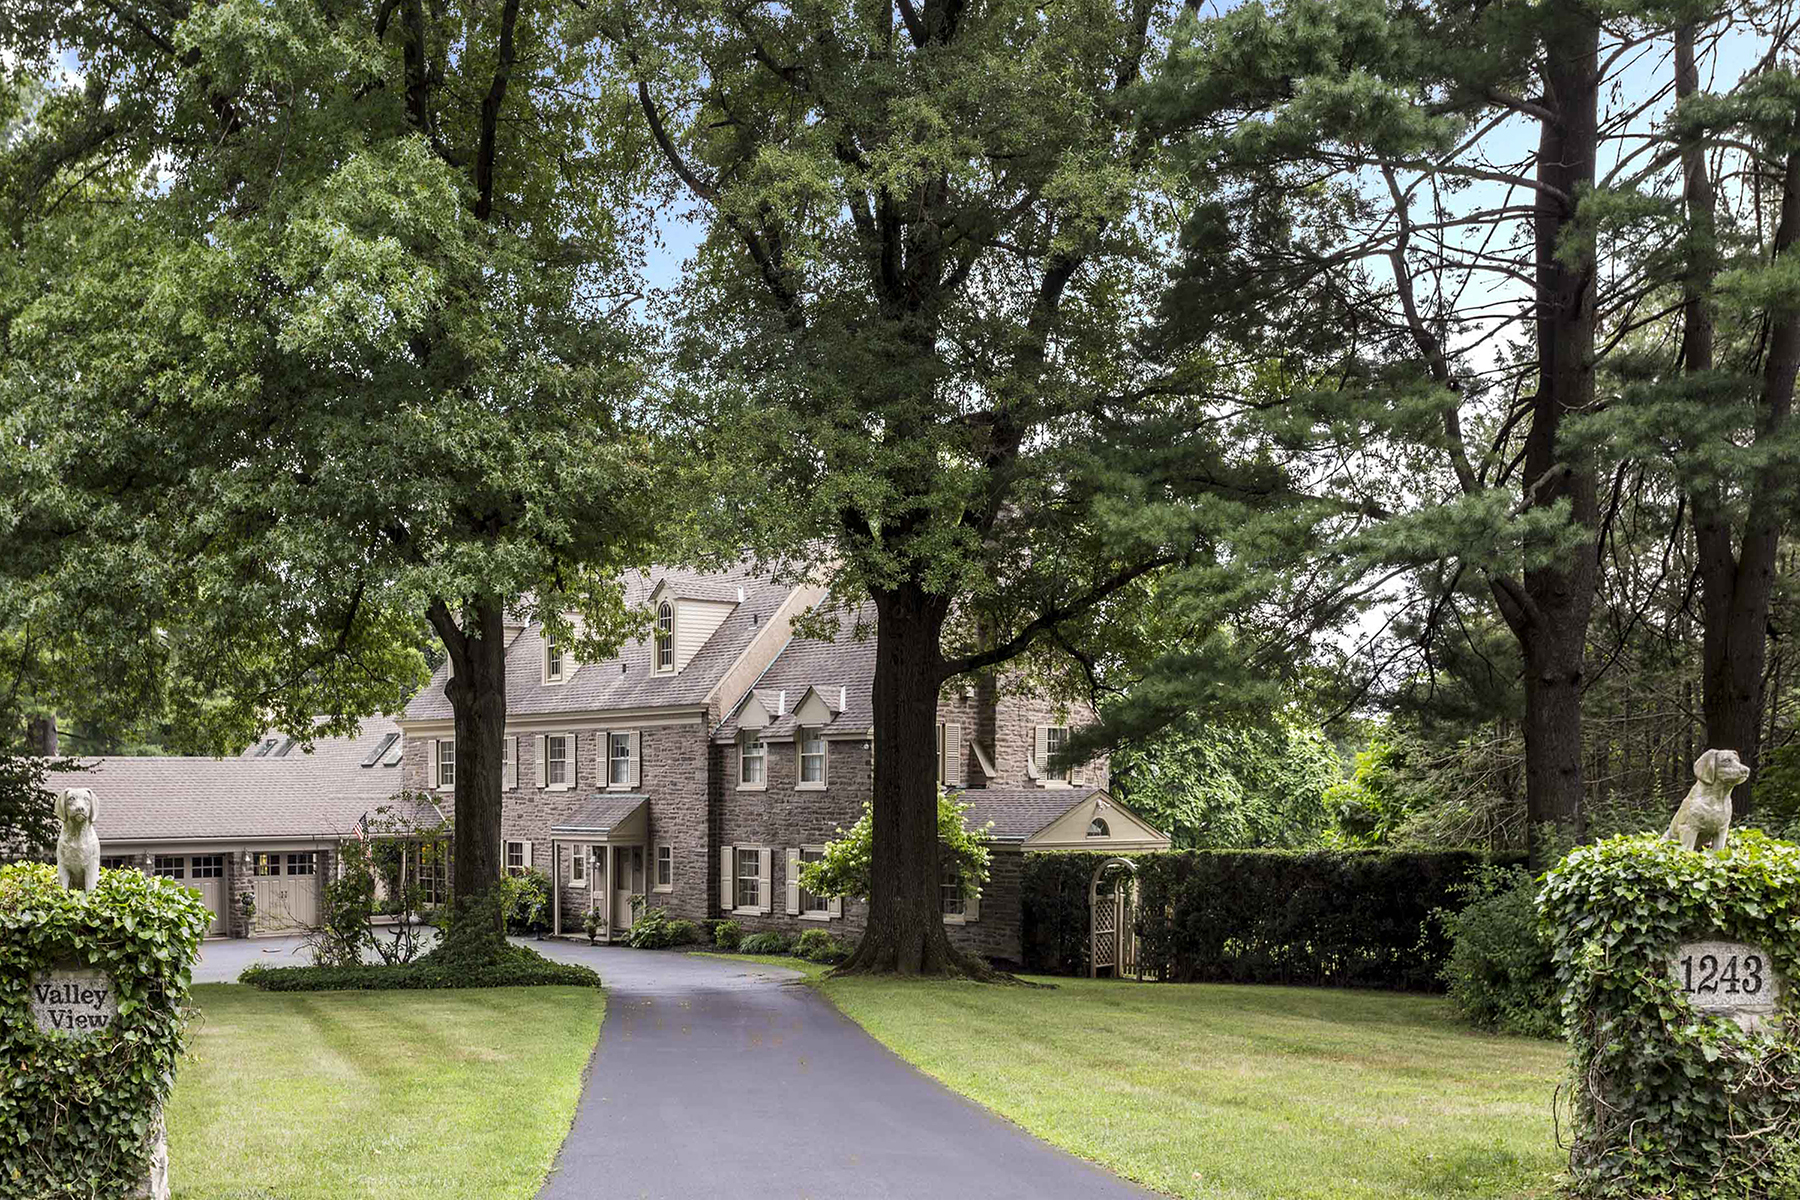 Single Family Home for Sale at Valley View 1243 Country Club Road Gladwyne, Pennsylvania 19035 United States